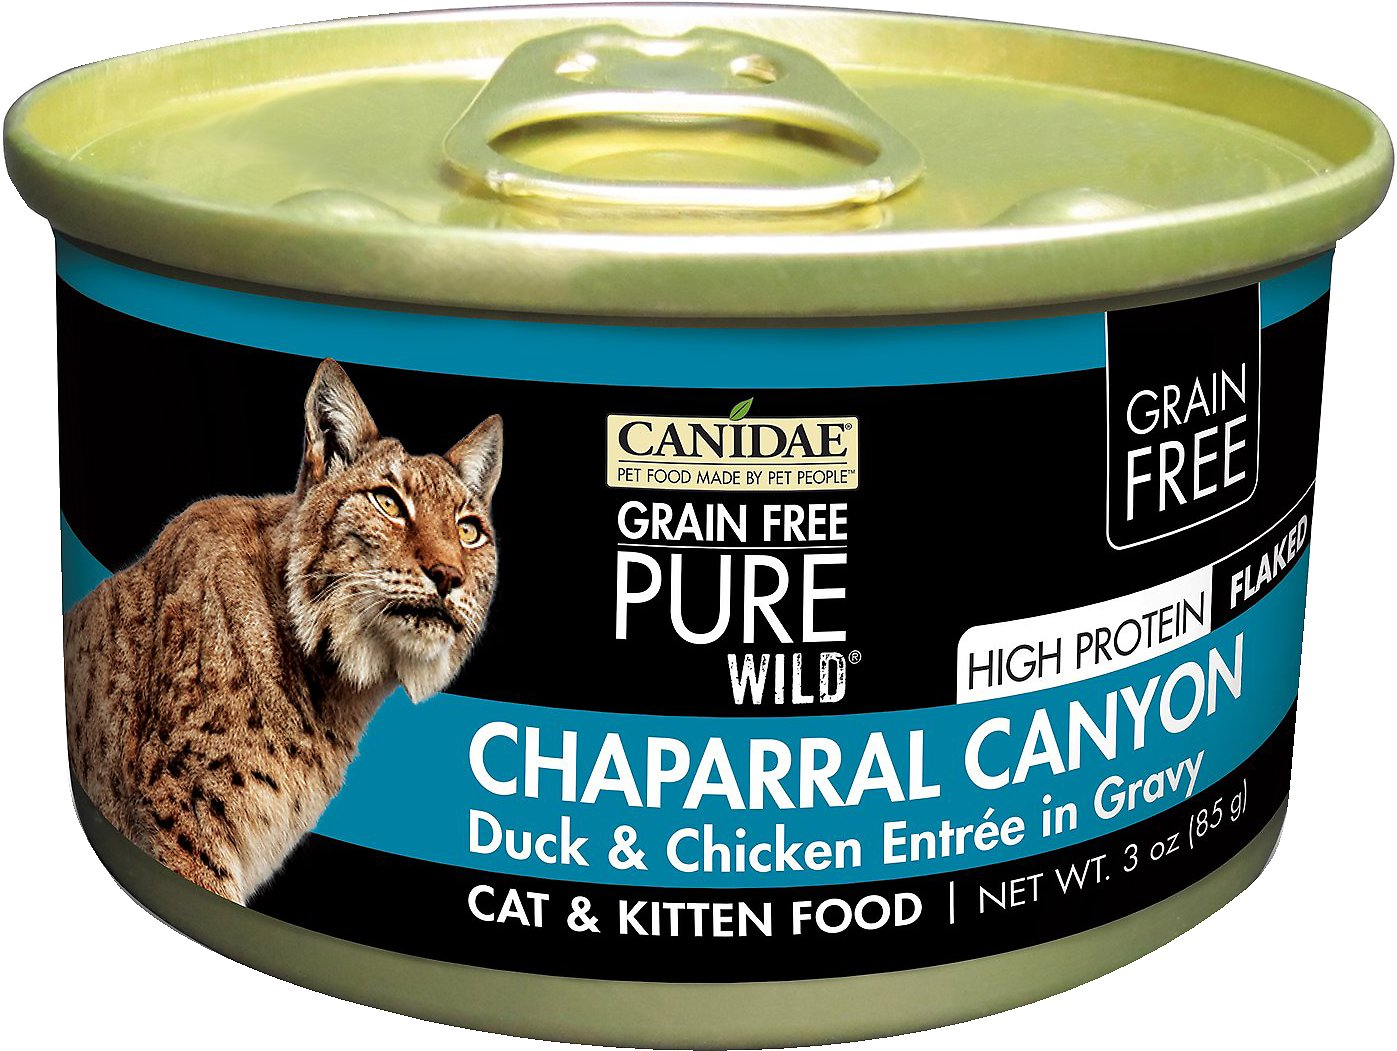 CANIDAE Grain-Free PURE WILD Chaparral Canyon with Duck & Chicken Canned Cat Food, 3-oz